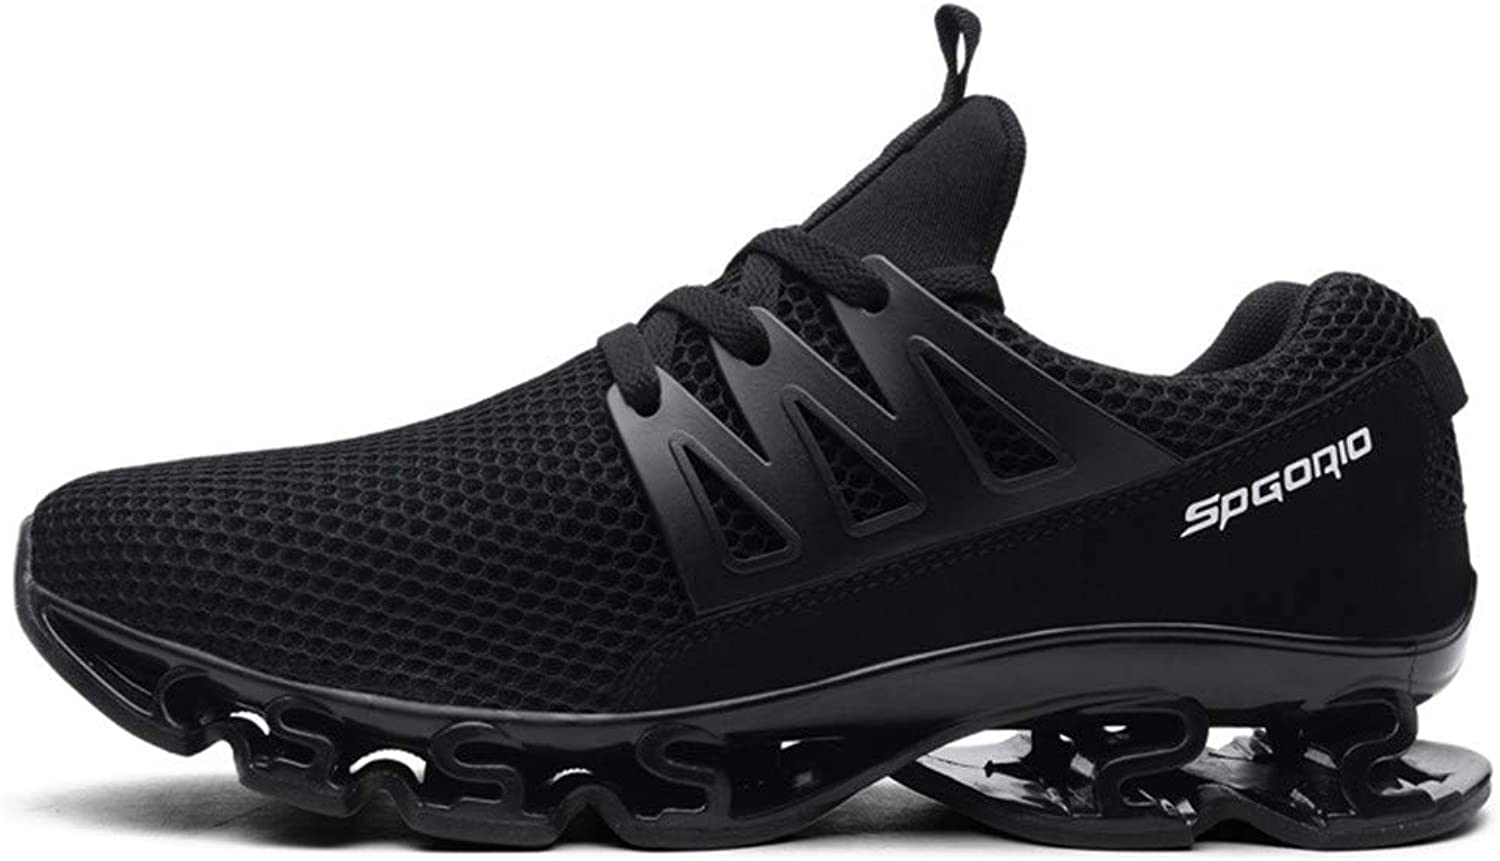 WOERW Men's shoes Casual shoes Sports Running shoes Couple Breathable Jogging